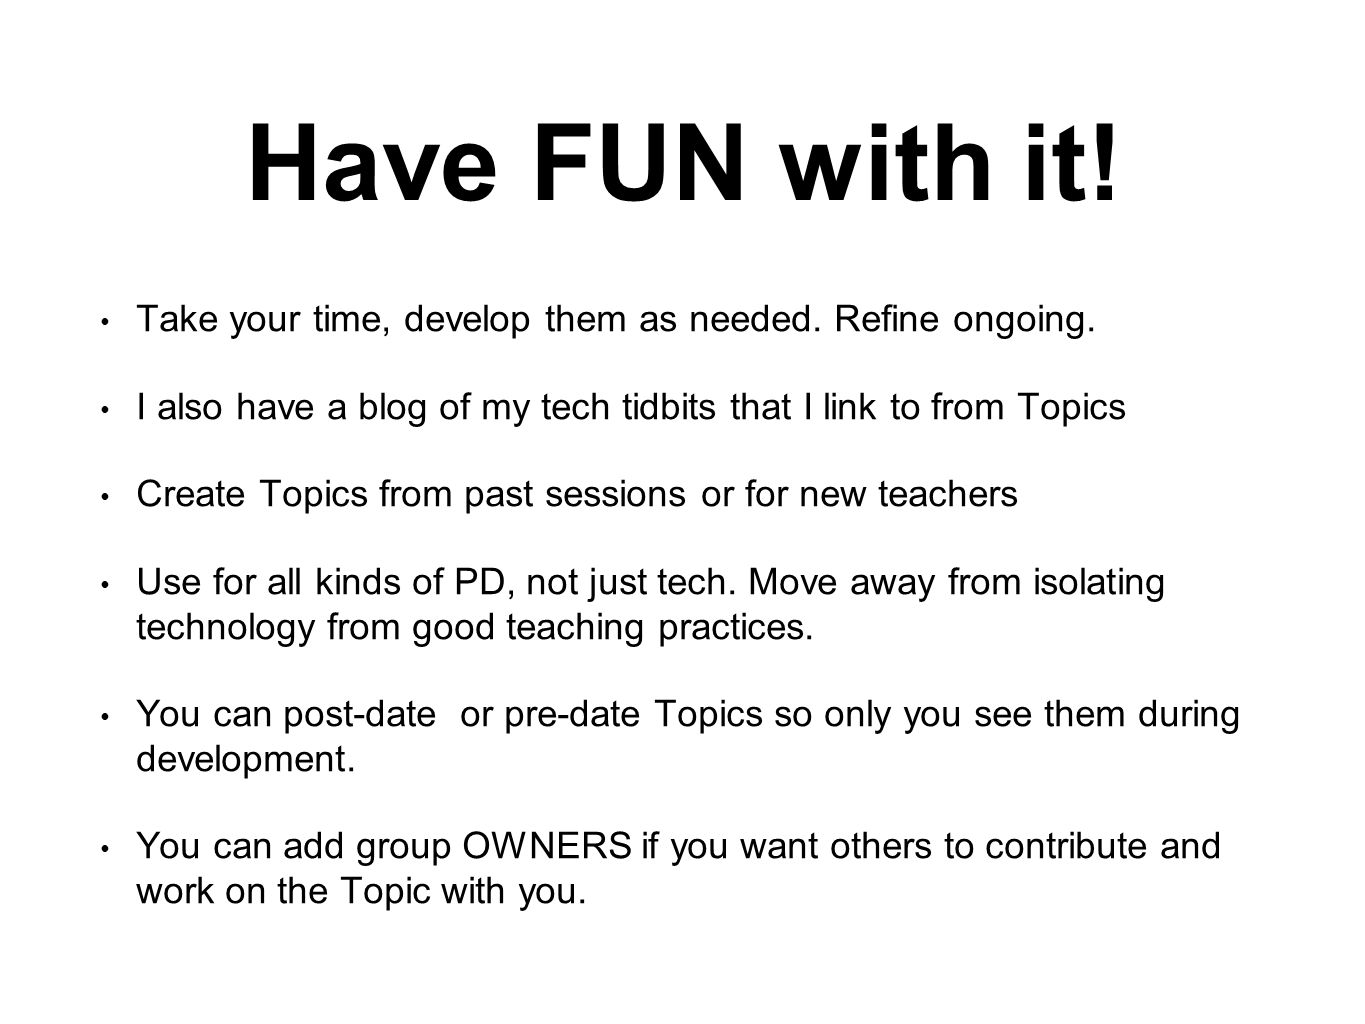 Have FUN with it. Take your time, develop them as needed.